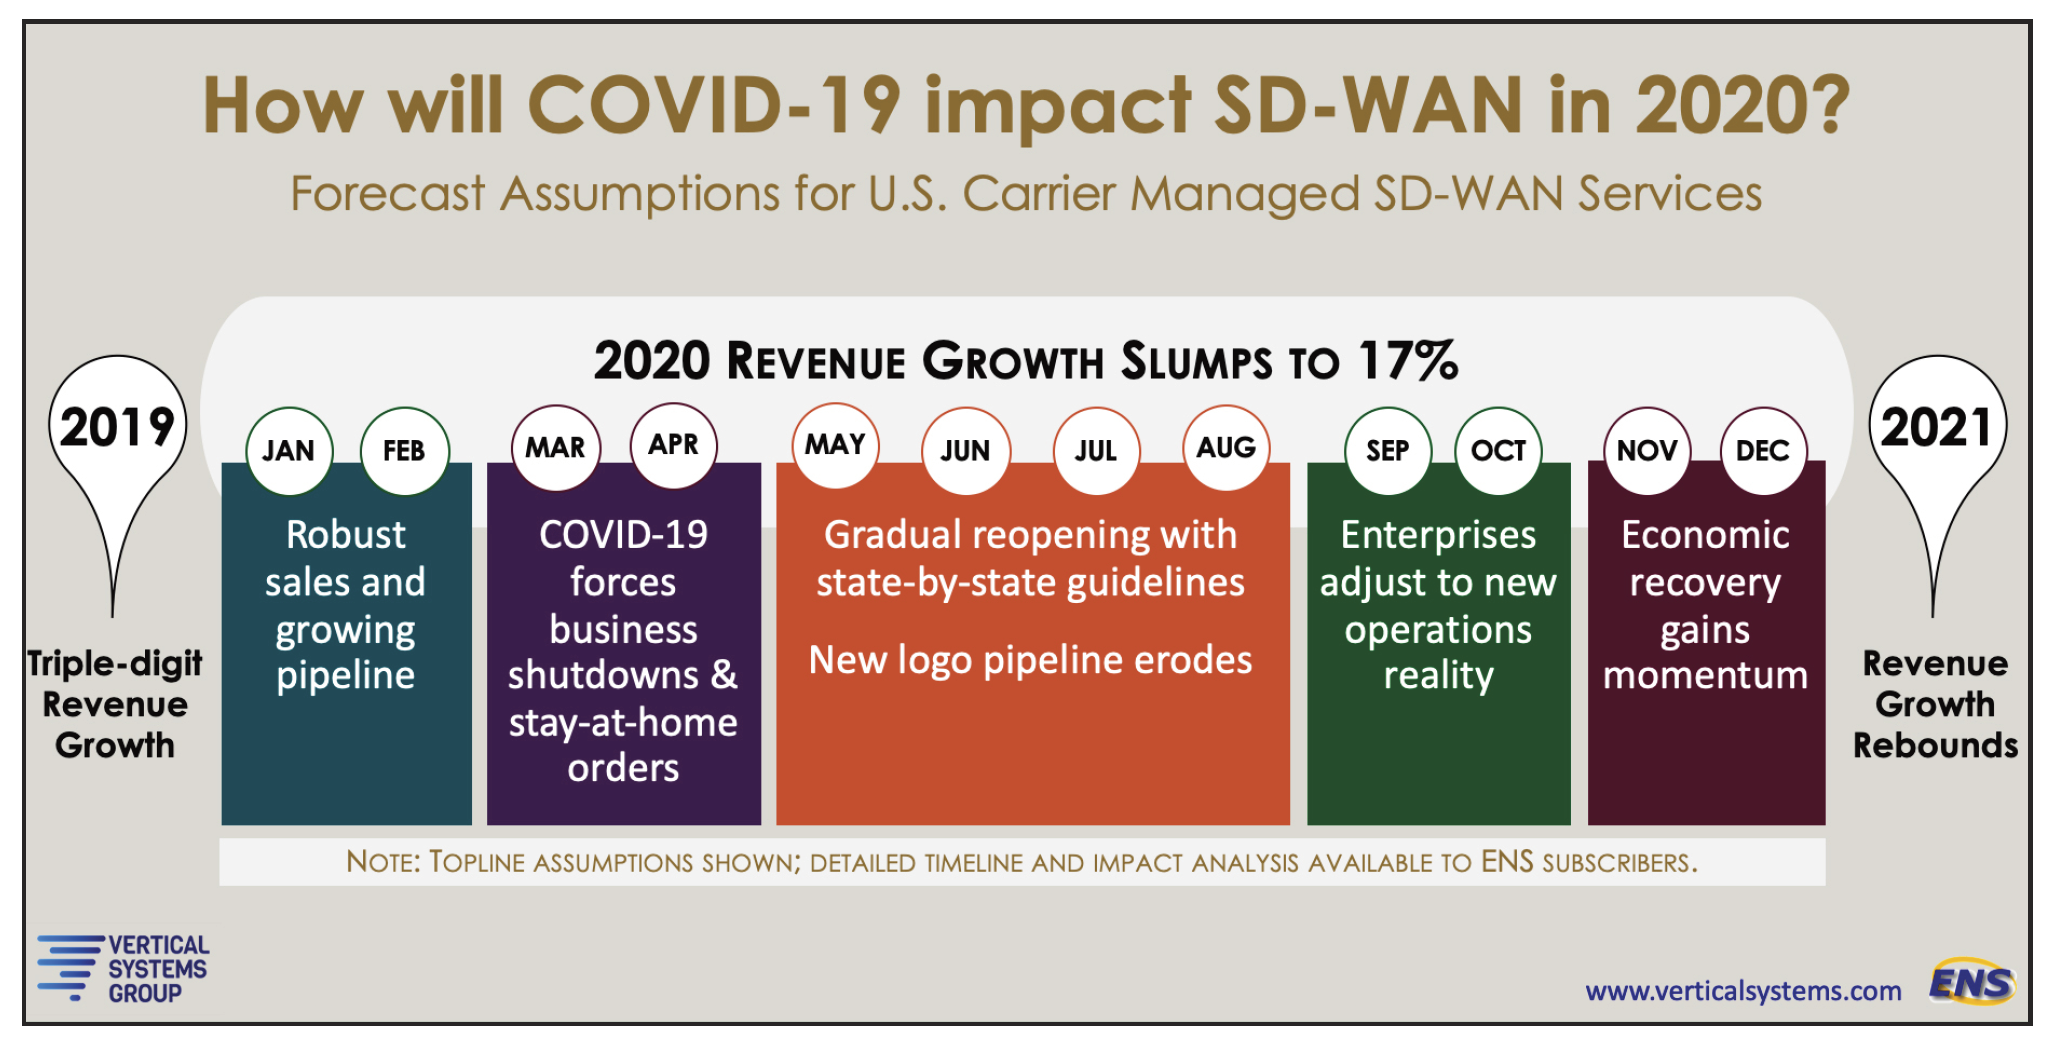 How will COVID-19 impact SD-WAN in 2020?